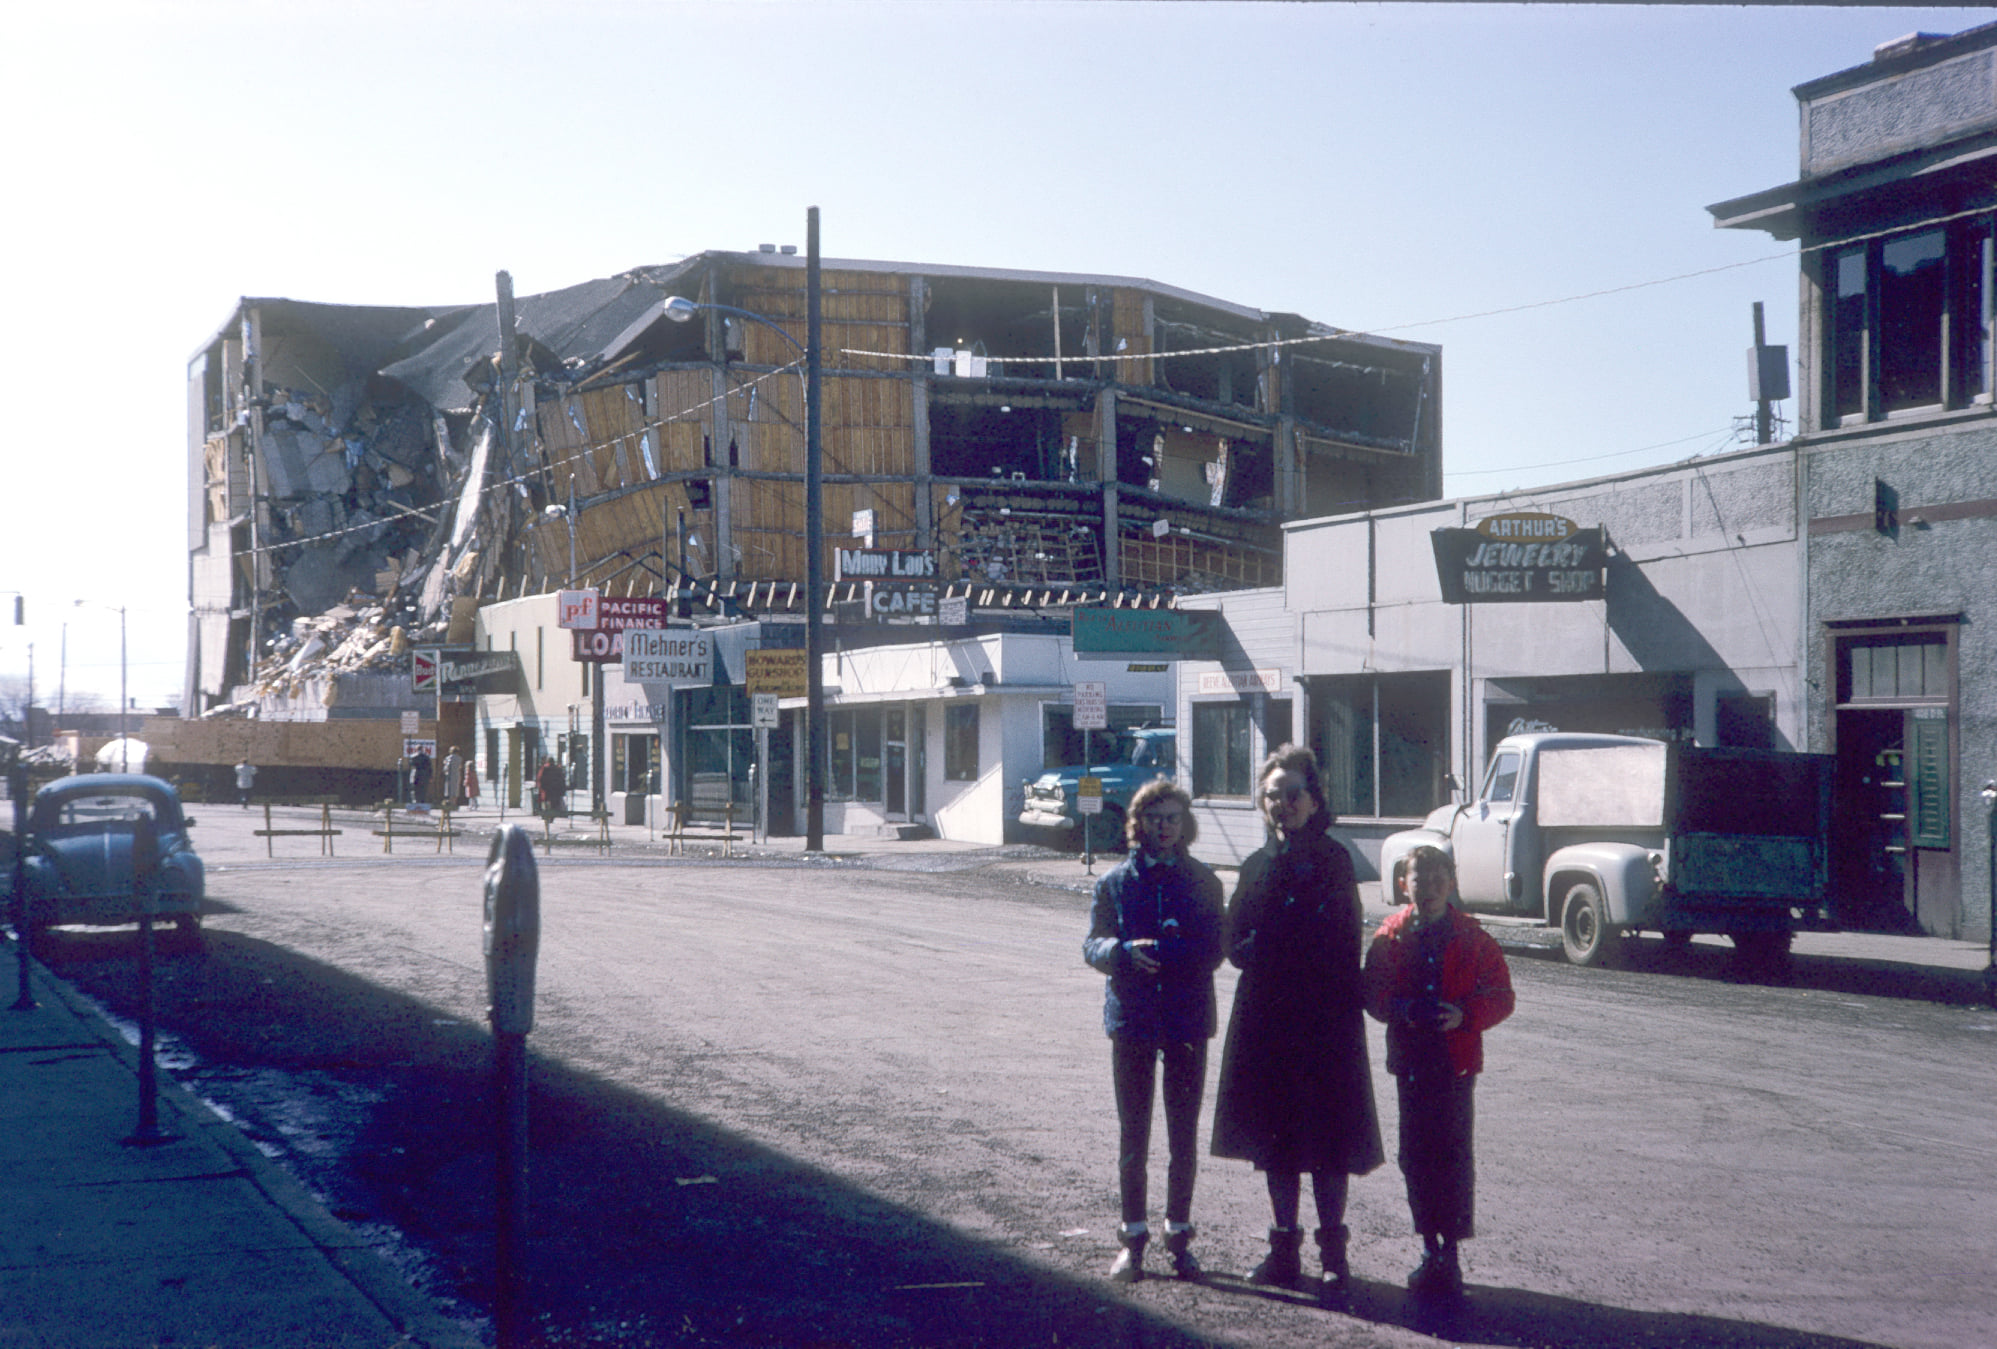 Destroyed JC Penney building in downtown Anchorage.